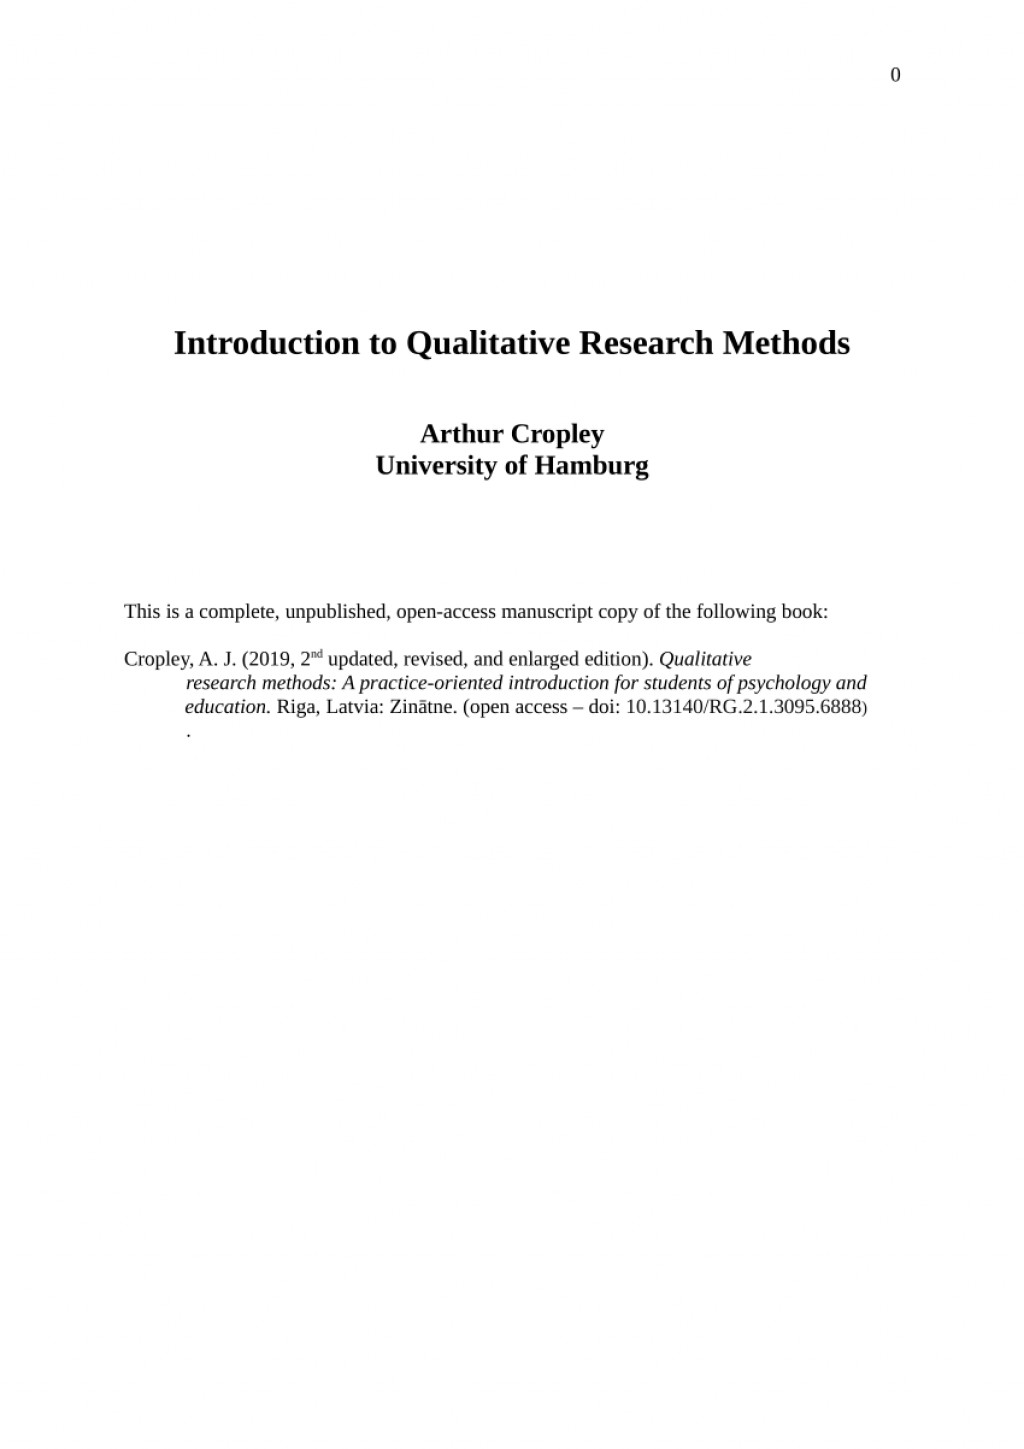 003 Introduction To Qualitative Research Paper Beautiful A How Write An Large